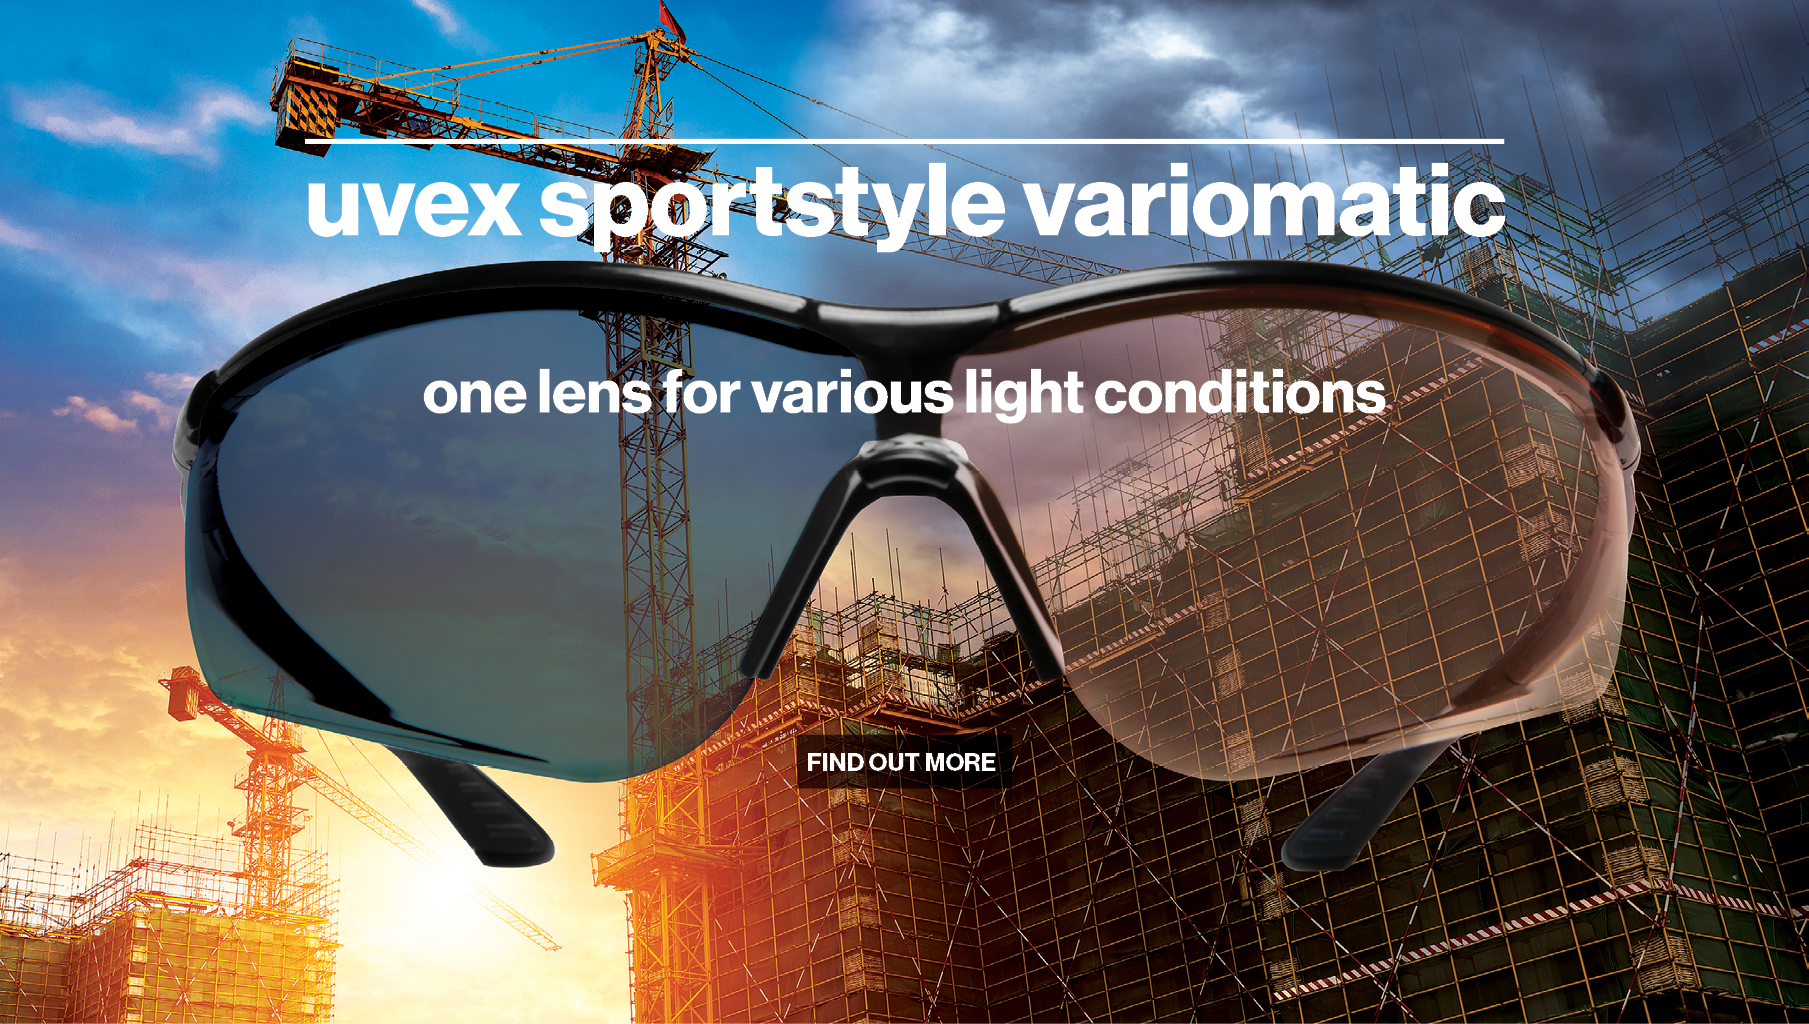 uvex variomatic self-tinting glasses